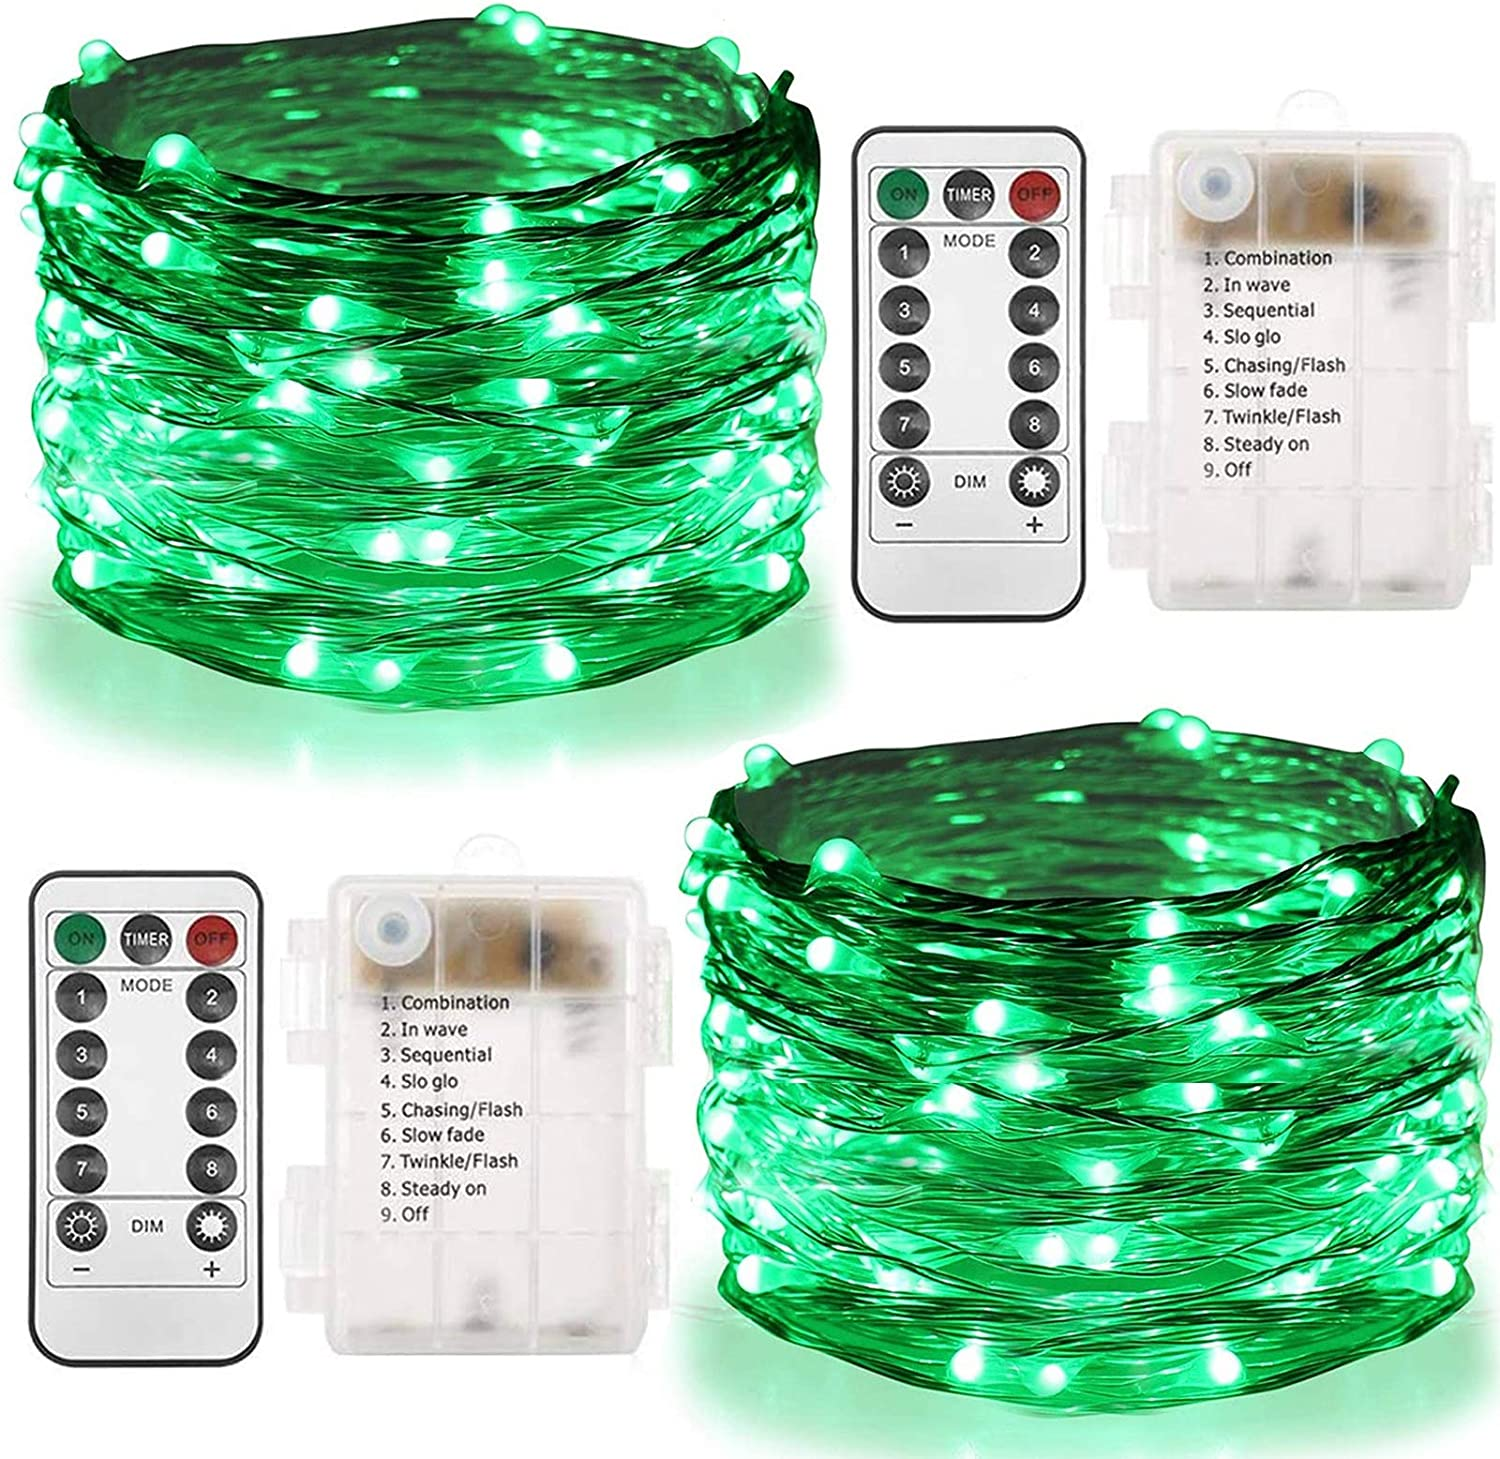 Twinkle Star 2 Set St Patricks Day Fairy Lights Battery Operated, 33ft 100 LED String Lights Remote Control Timer Christmas String Lights 8 Modes for Garden Party Outdoor Indoor Decor, Green